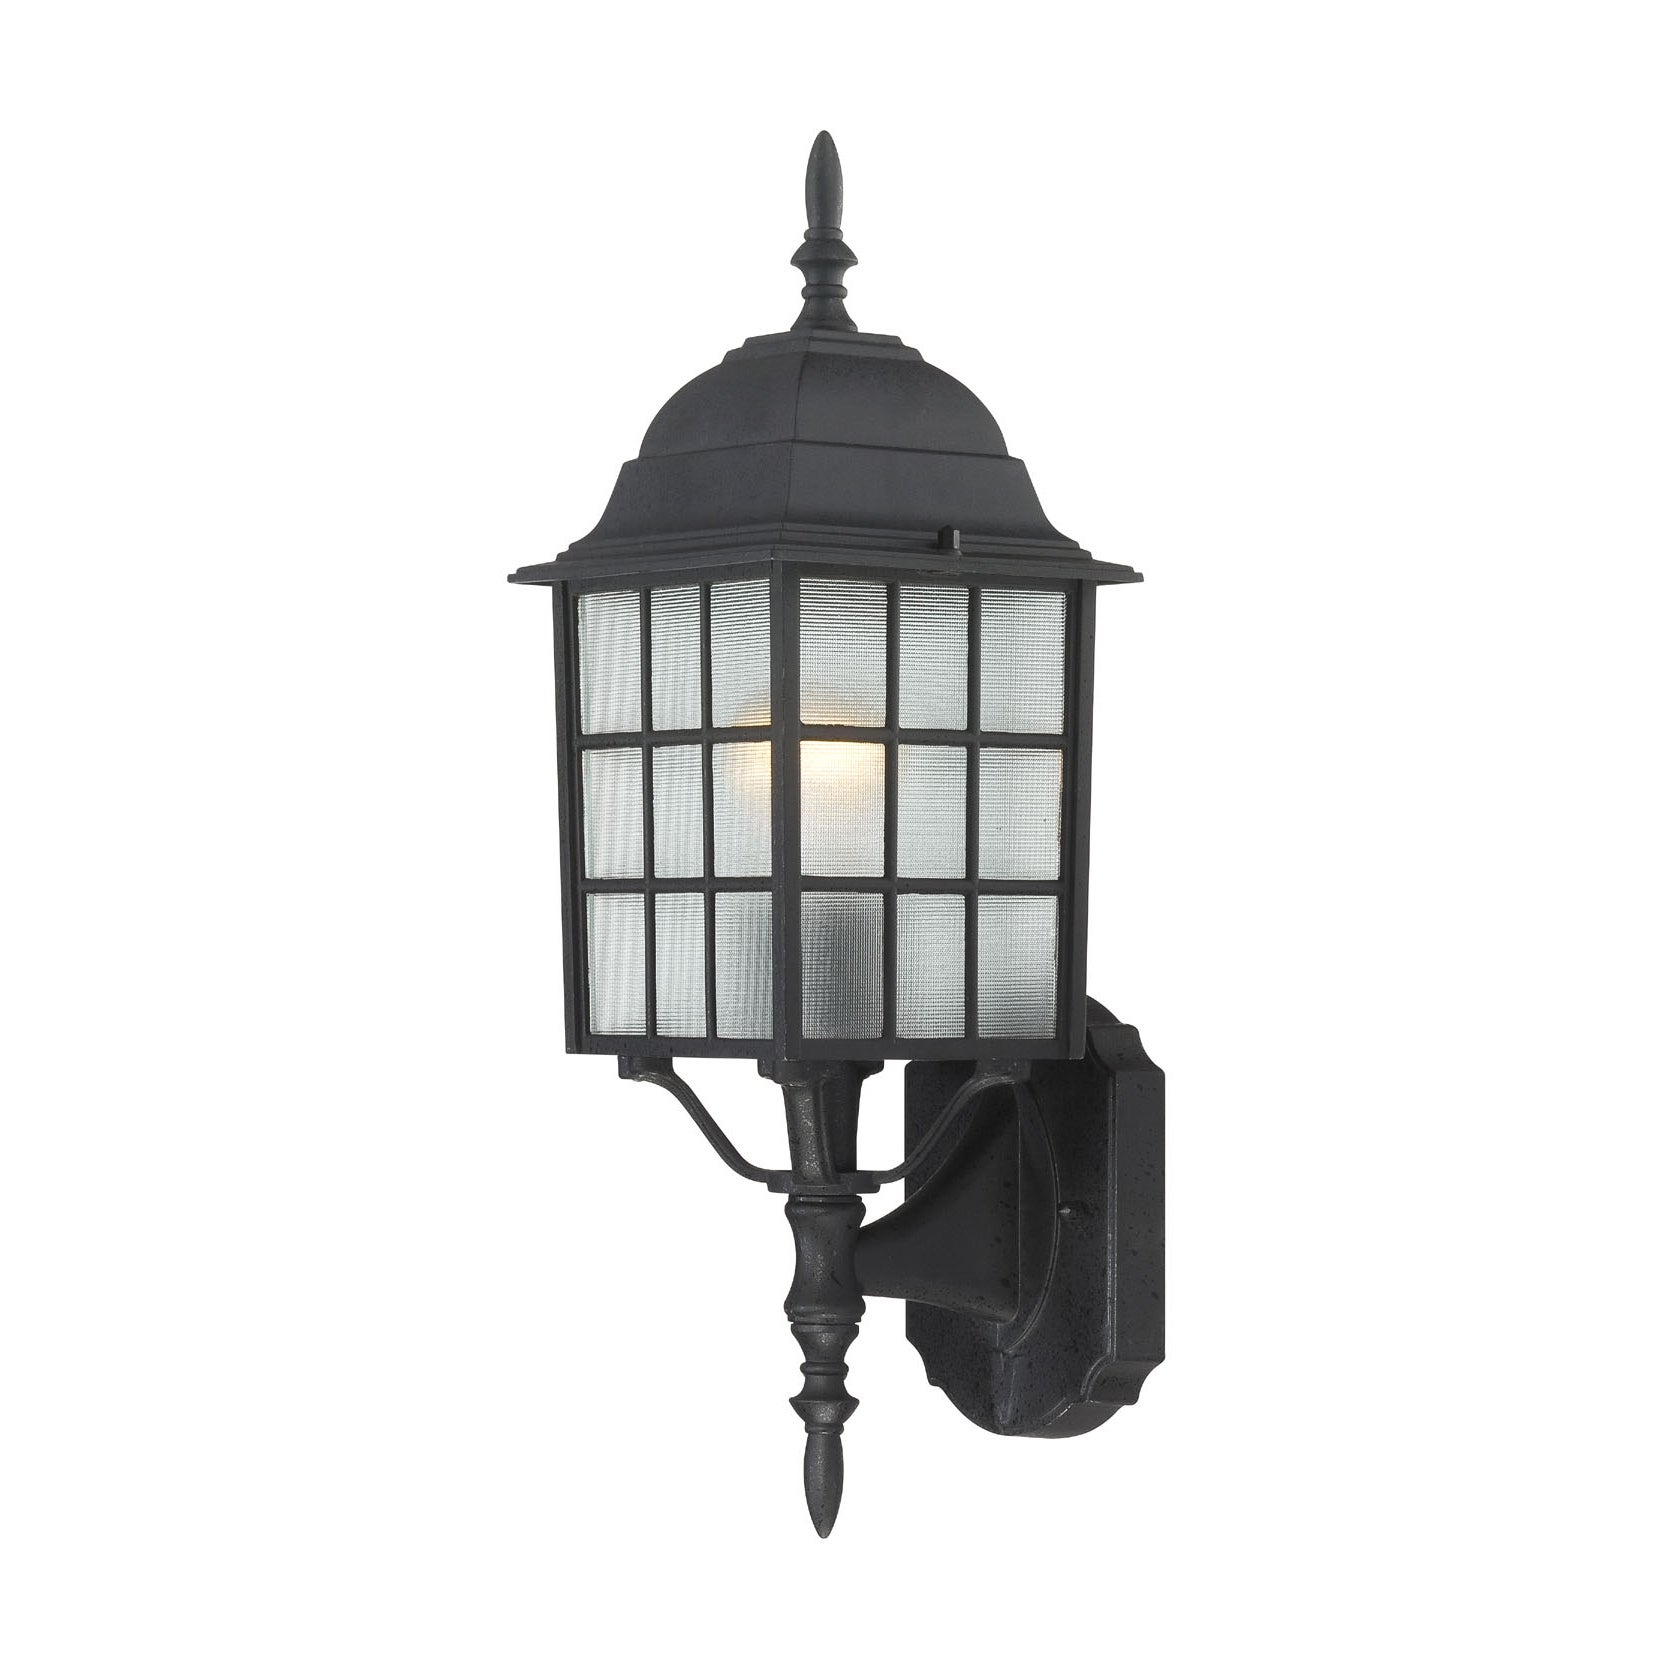 Nuvo 'Adams' 1-light Textured Black 18-inch Wall Sconce